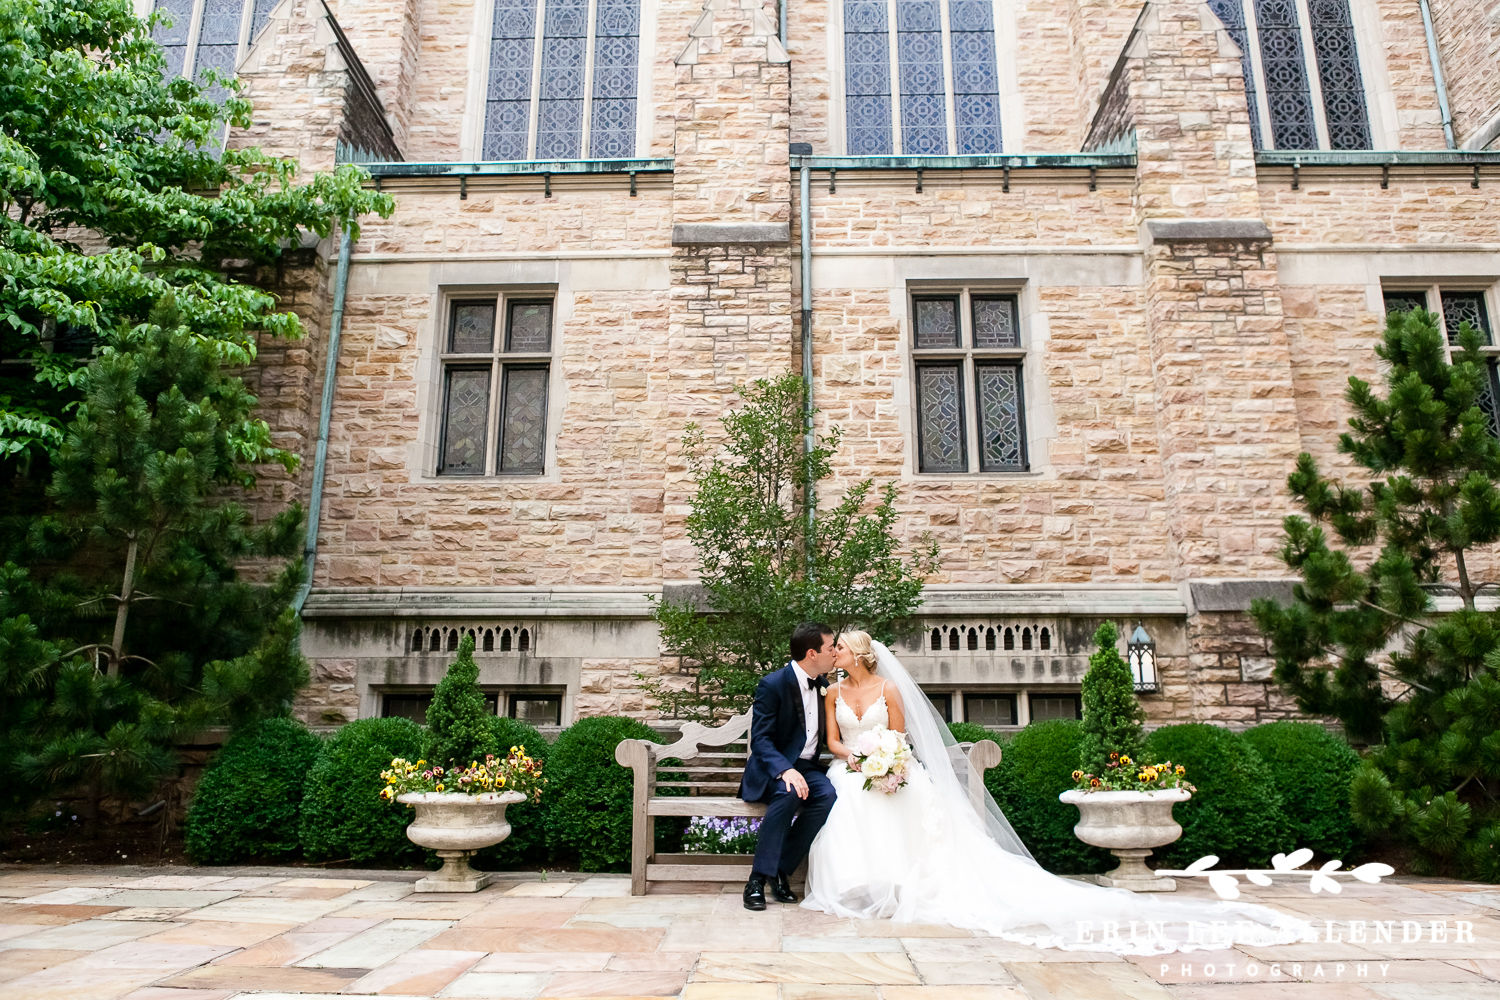 Couple_Kiss_In_Courtyard